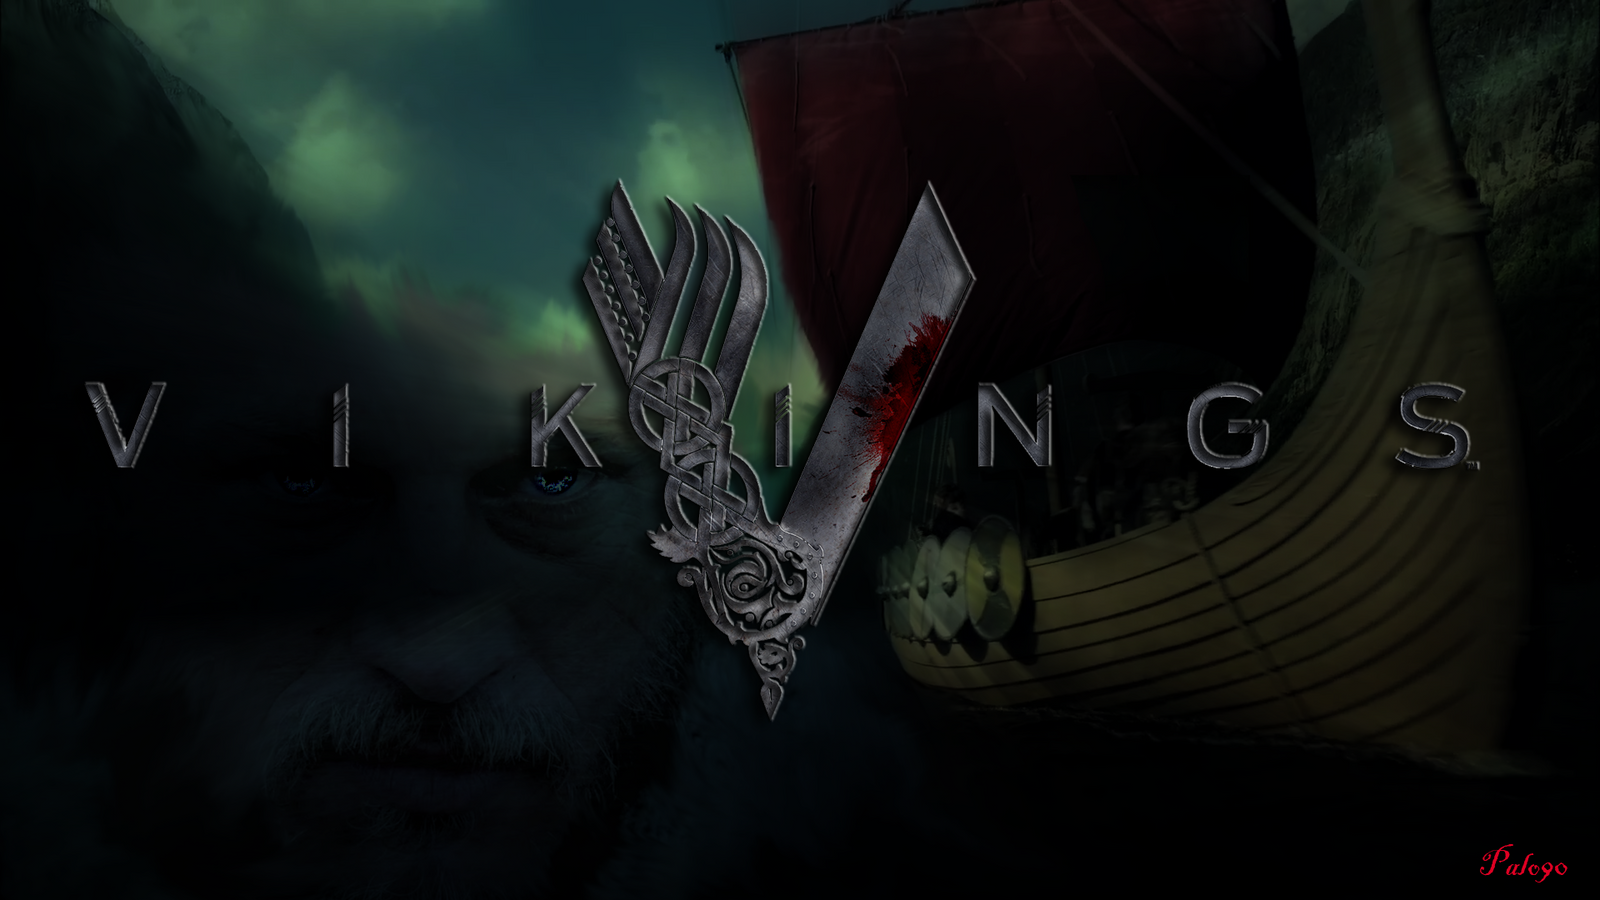 vikings history channel wallpaper by palo90 fan art wallpaper movies    Vikings Logo Wallpaper